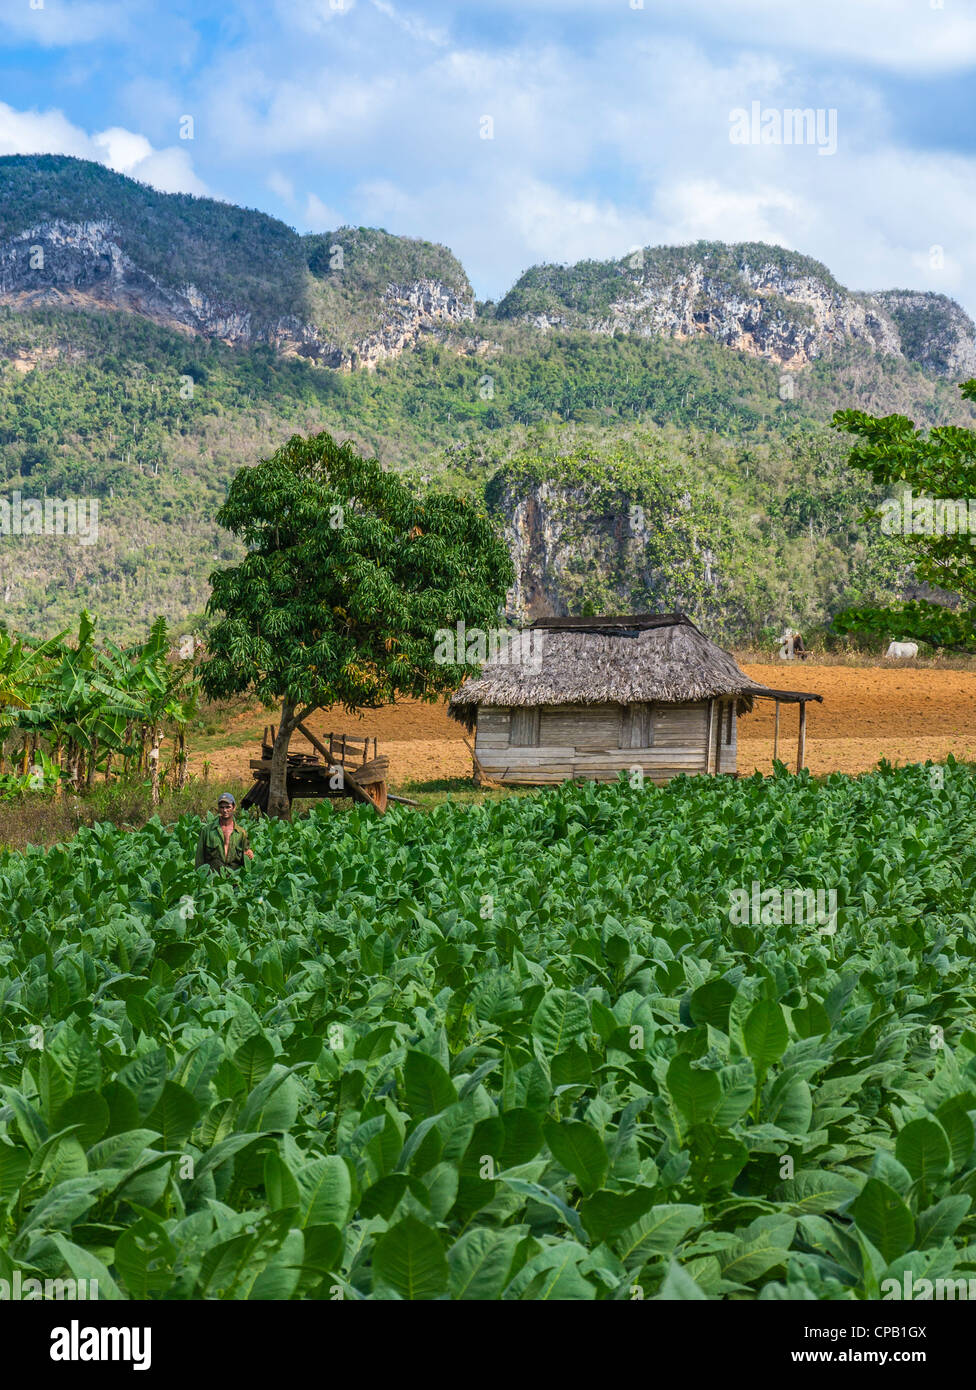 A farmhand harvests tobacco leaves in the green fields of western Cuba near the town of Viñales in Pinar del - Stock Image